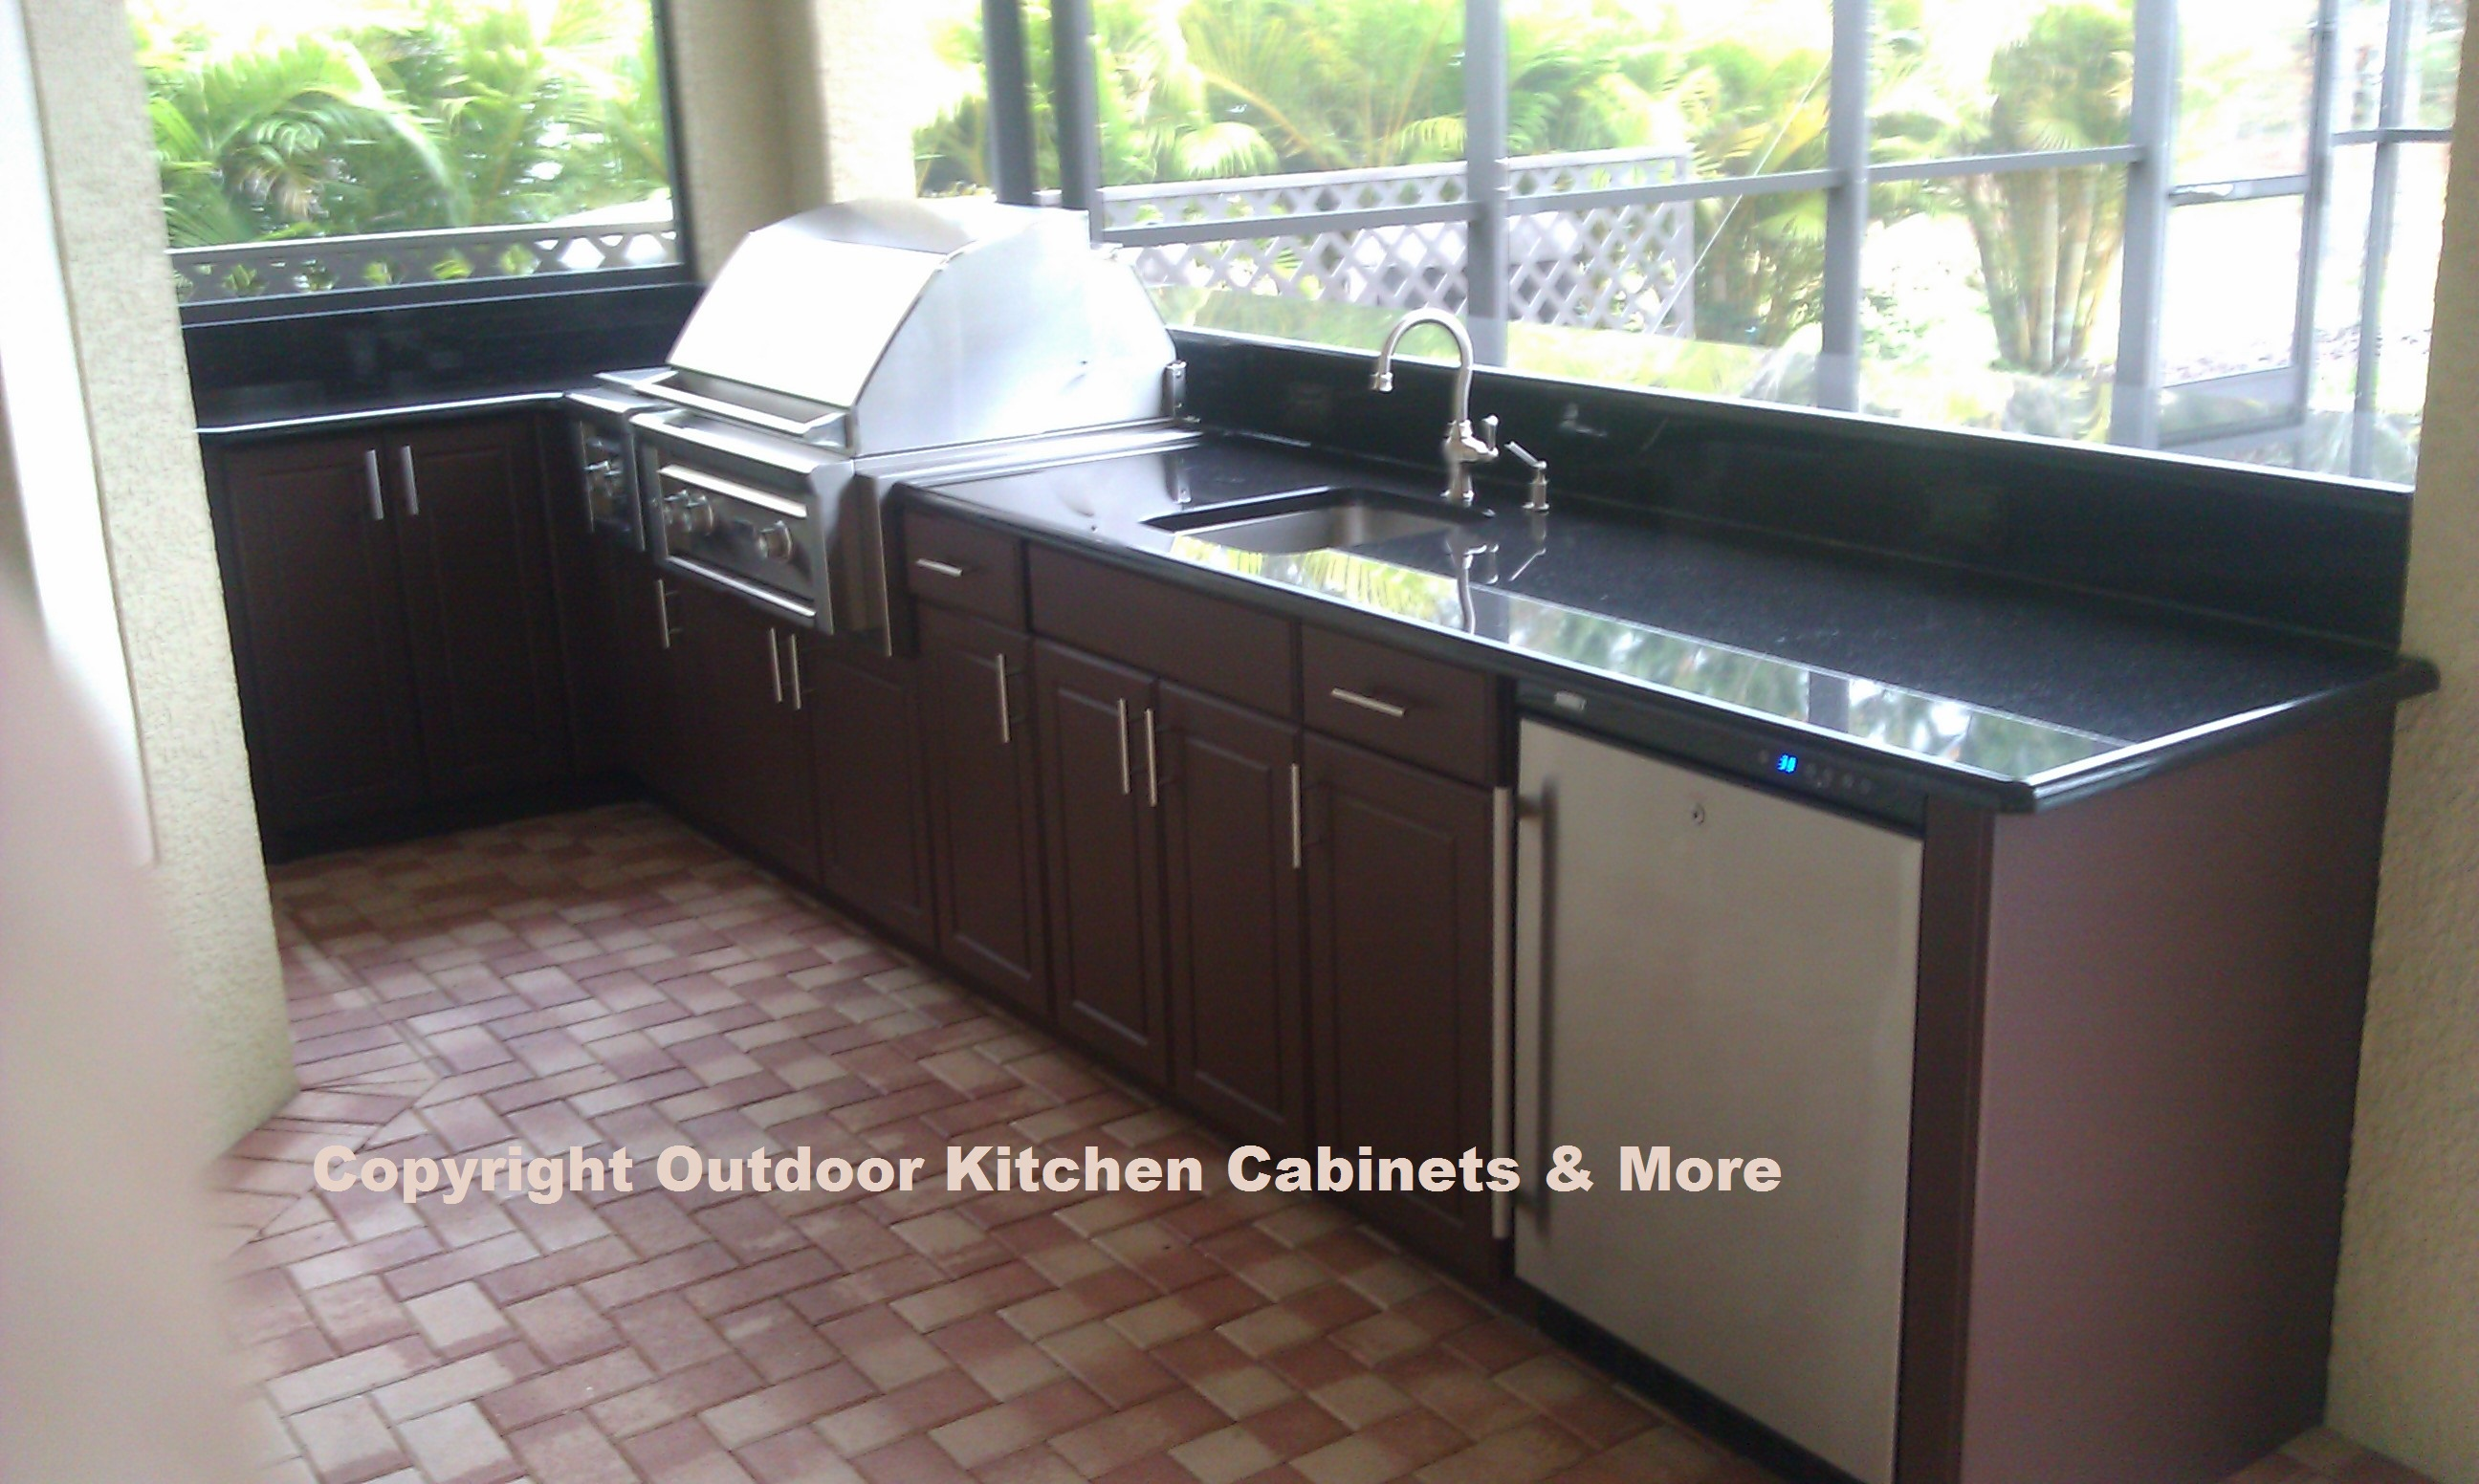 outdoorkitchencabinetsandmore outdoor kitchen cabinets switlyke odk